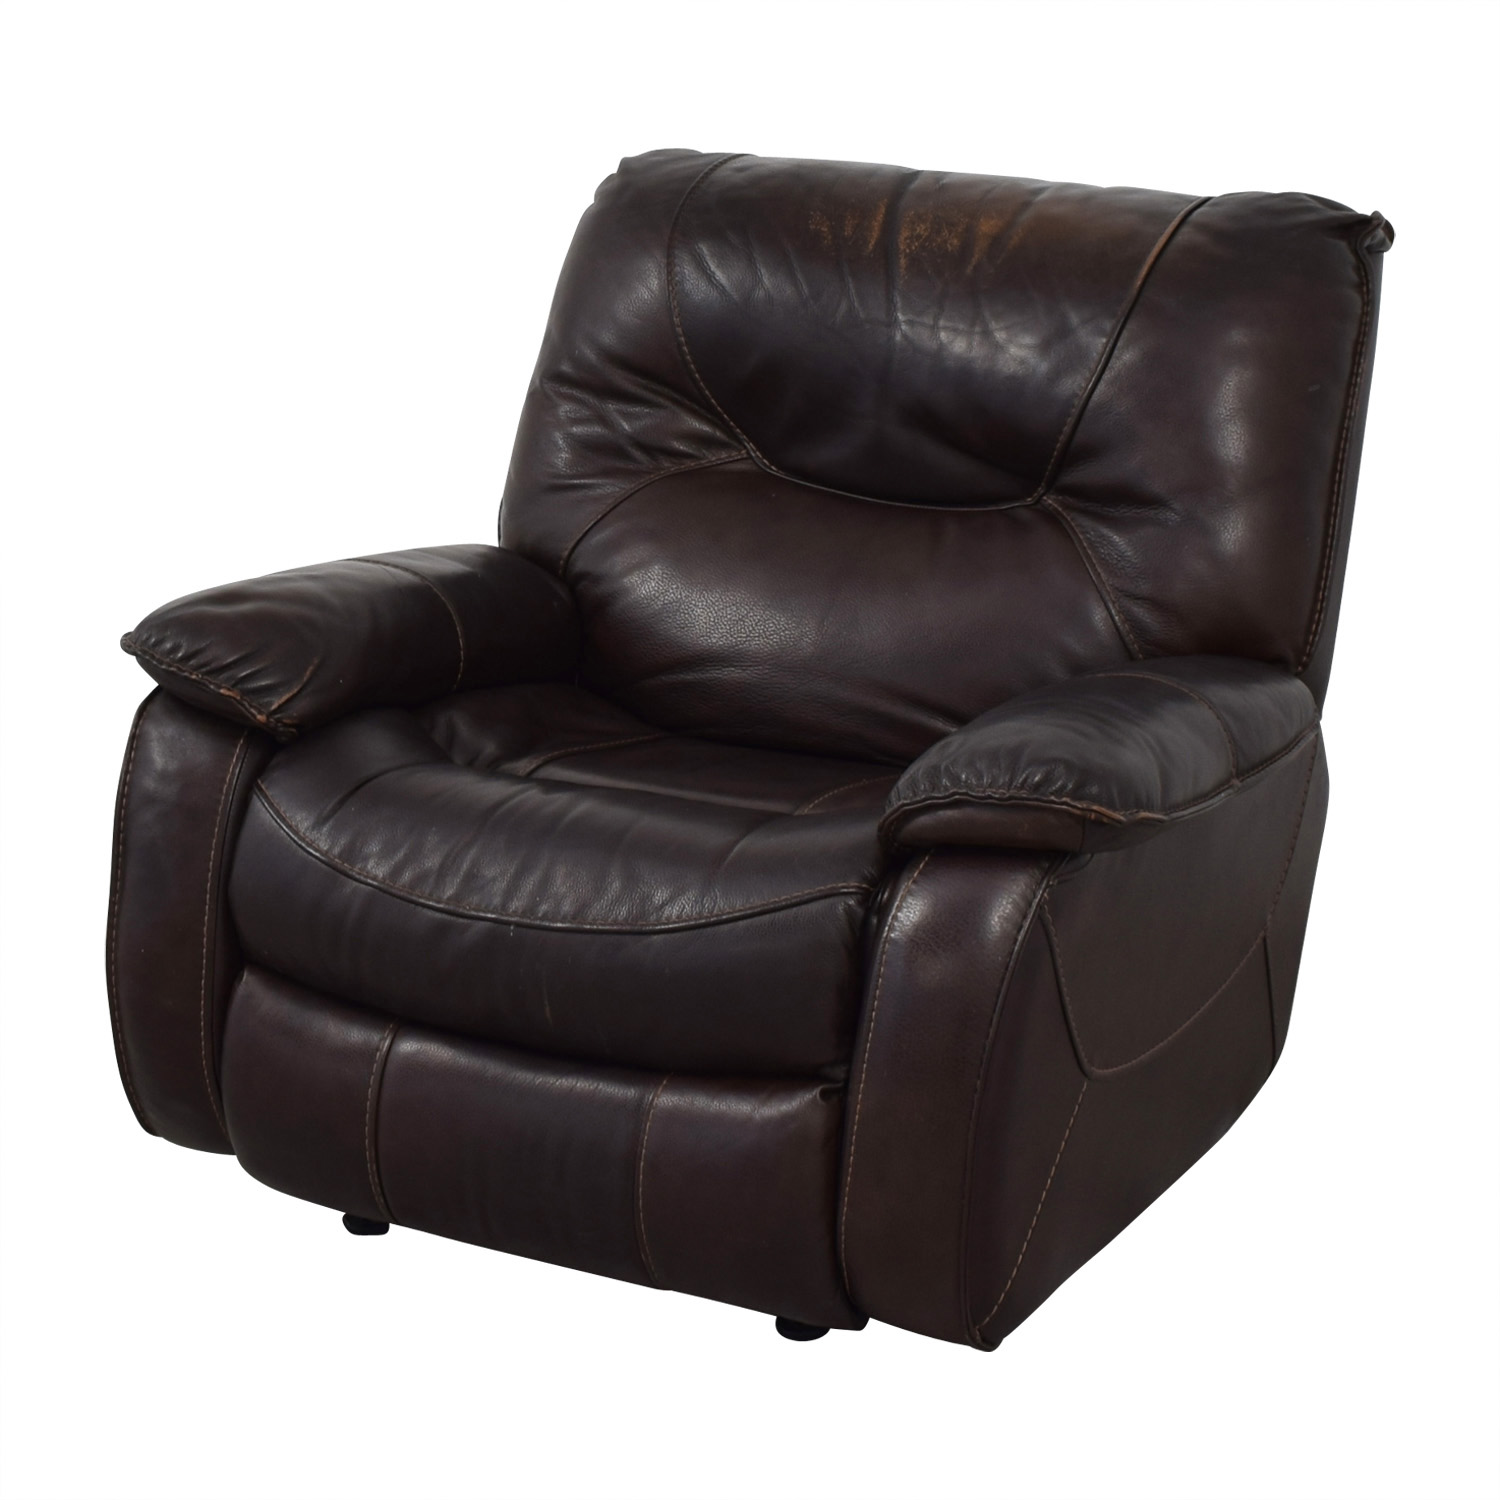 Macy's Macy's Brown Leather Recliner Chair brown